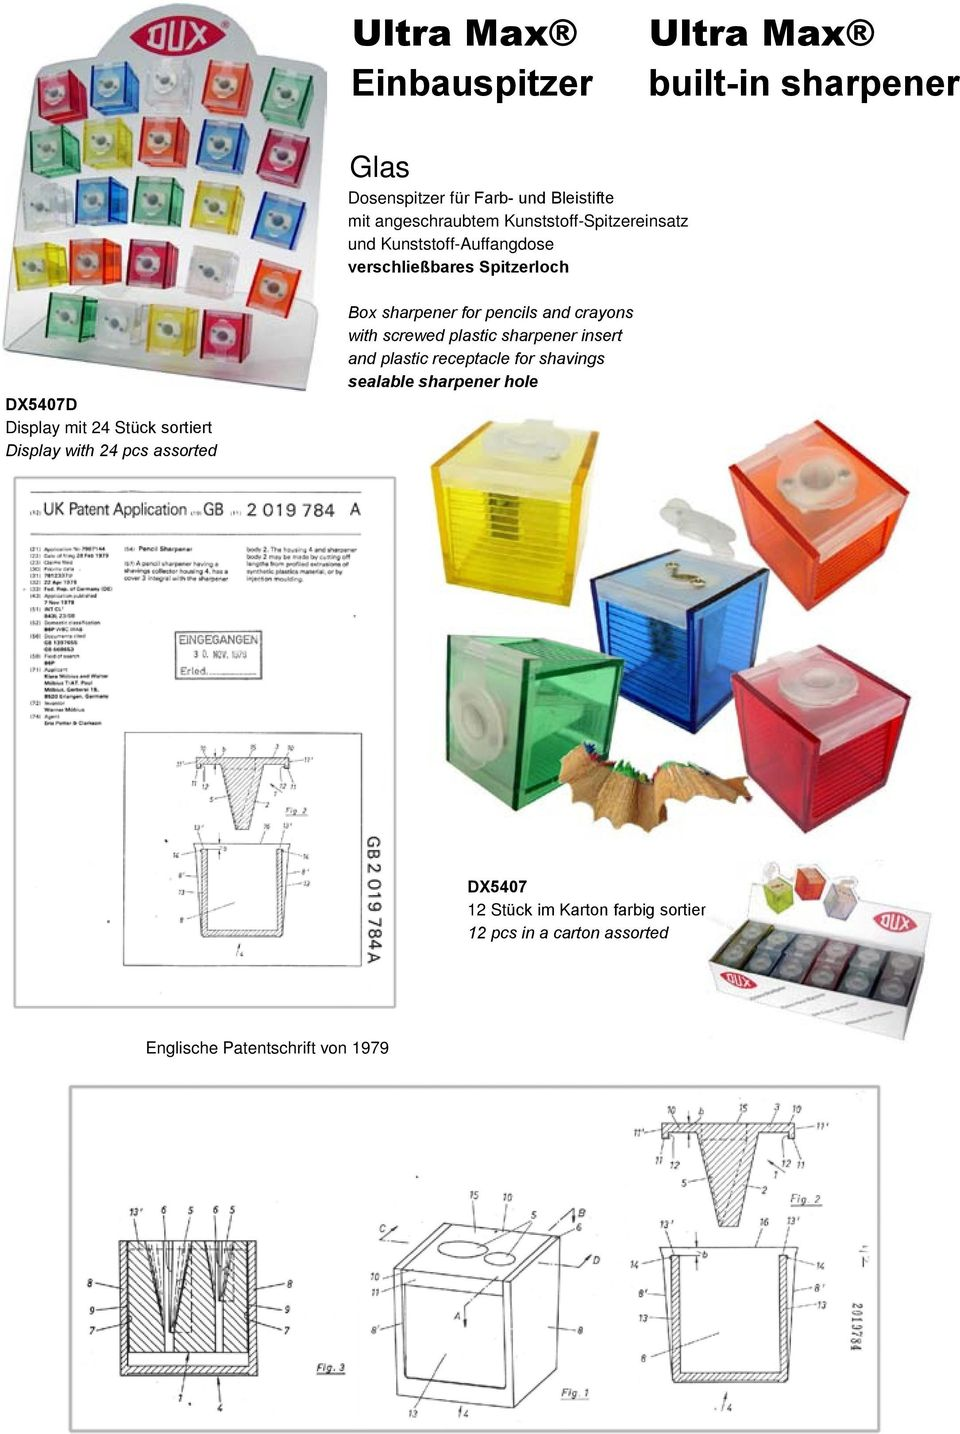 Display with 24 pcs assorted Box sharpener for pencils and crayons with screwed plastic sharpener insert and plastic